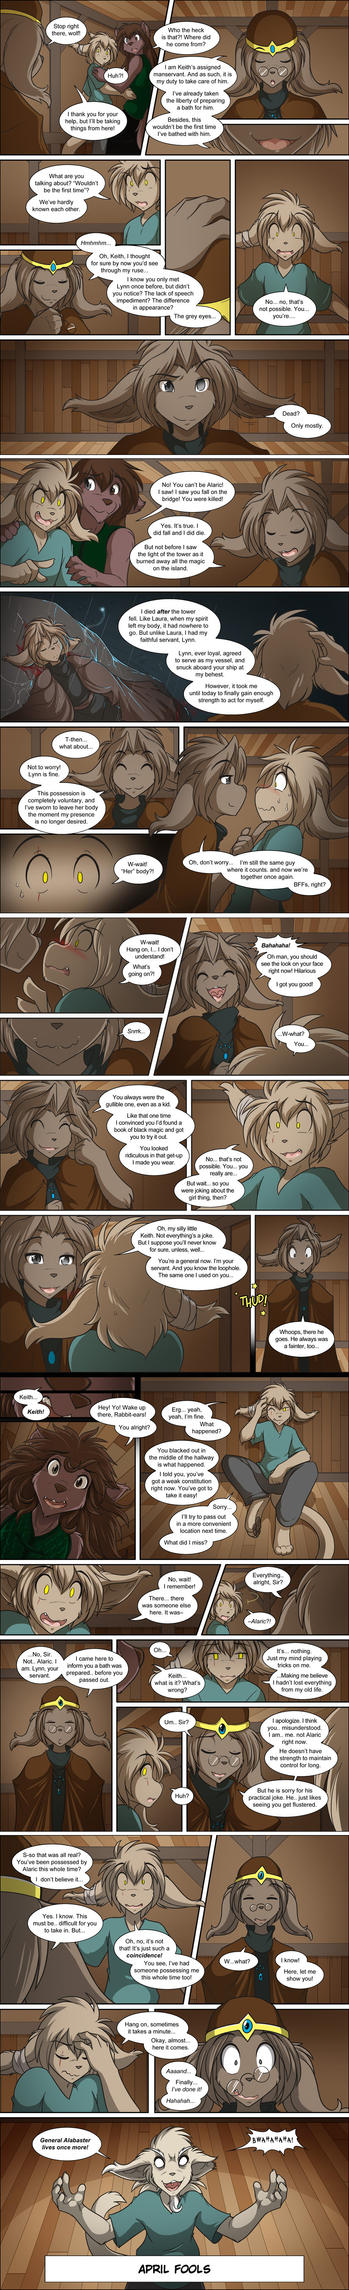 The Entire April Fools Saga 2014 by Twokinds